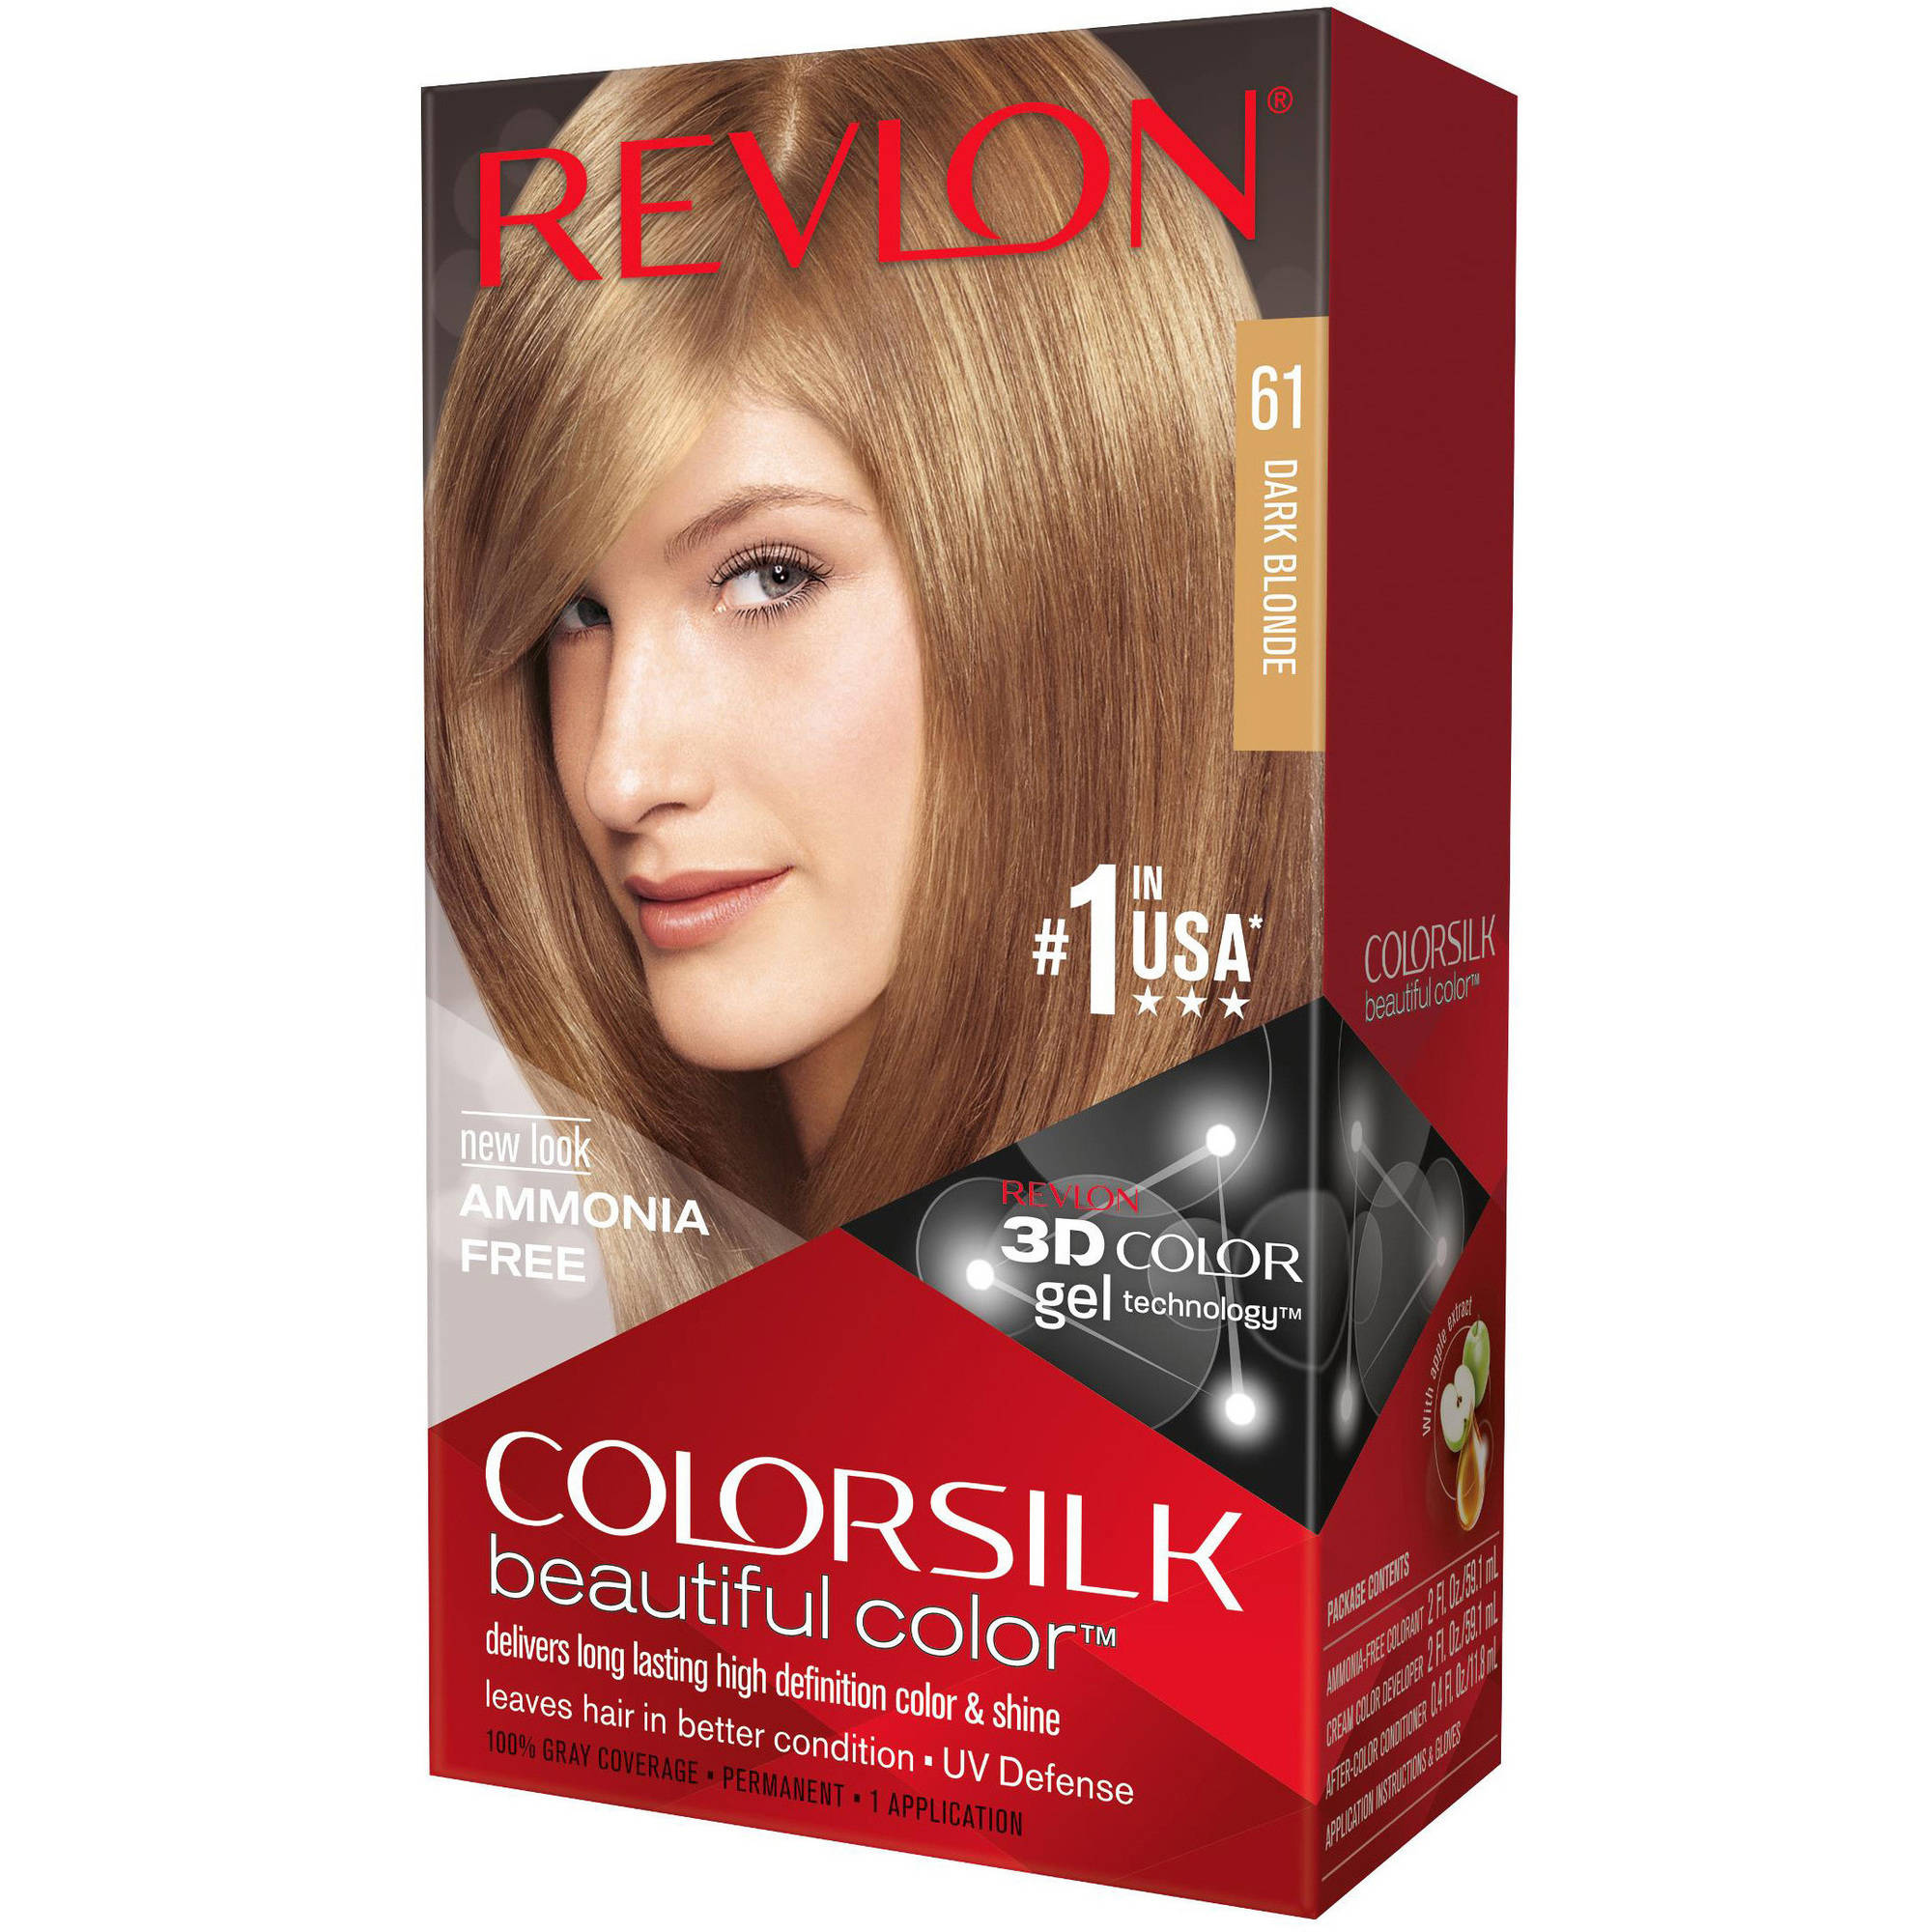 Revlon Colorsilk Beautiful Color Permanent Hair Color, 61 Dark Blonde